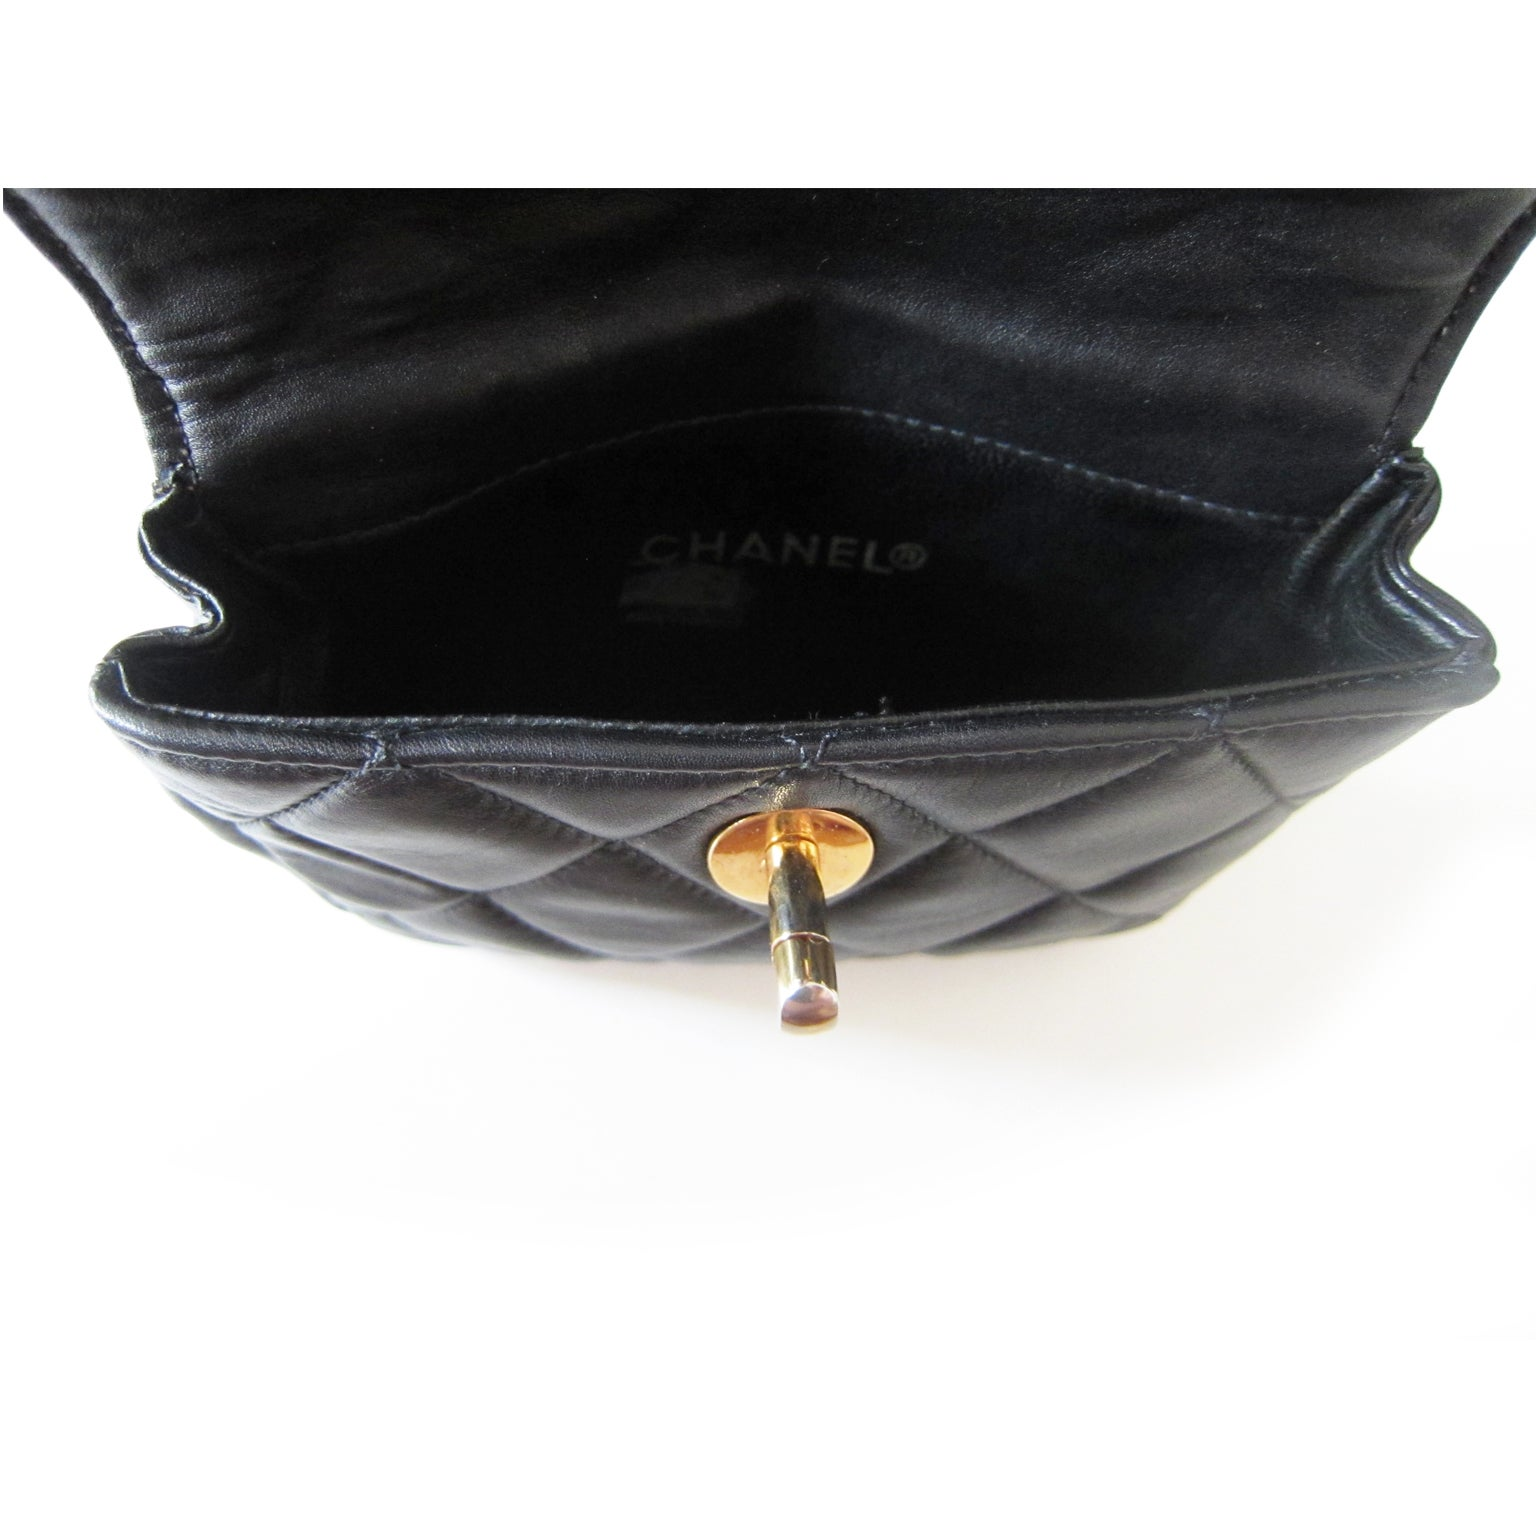 d28cc5f706b56a Chanel Chain Hook Belt Quilted Waist Bag Black Leather at 1stdibs